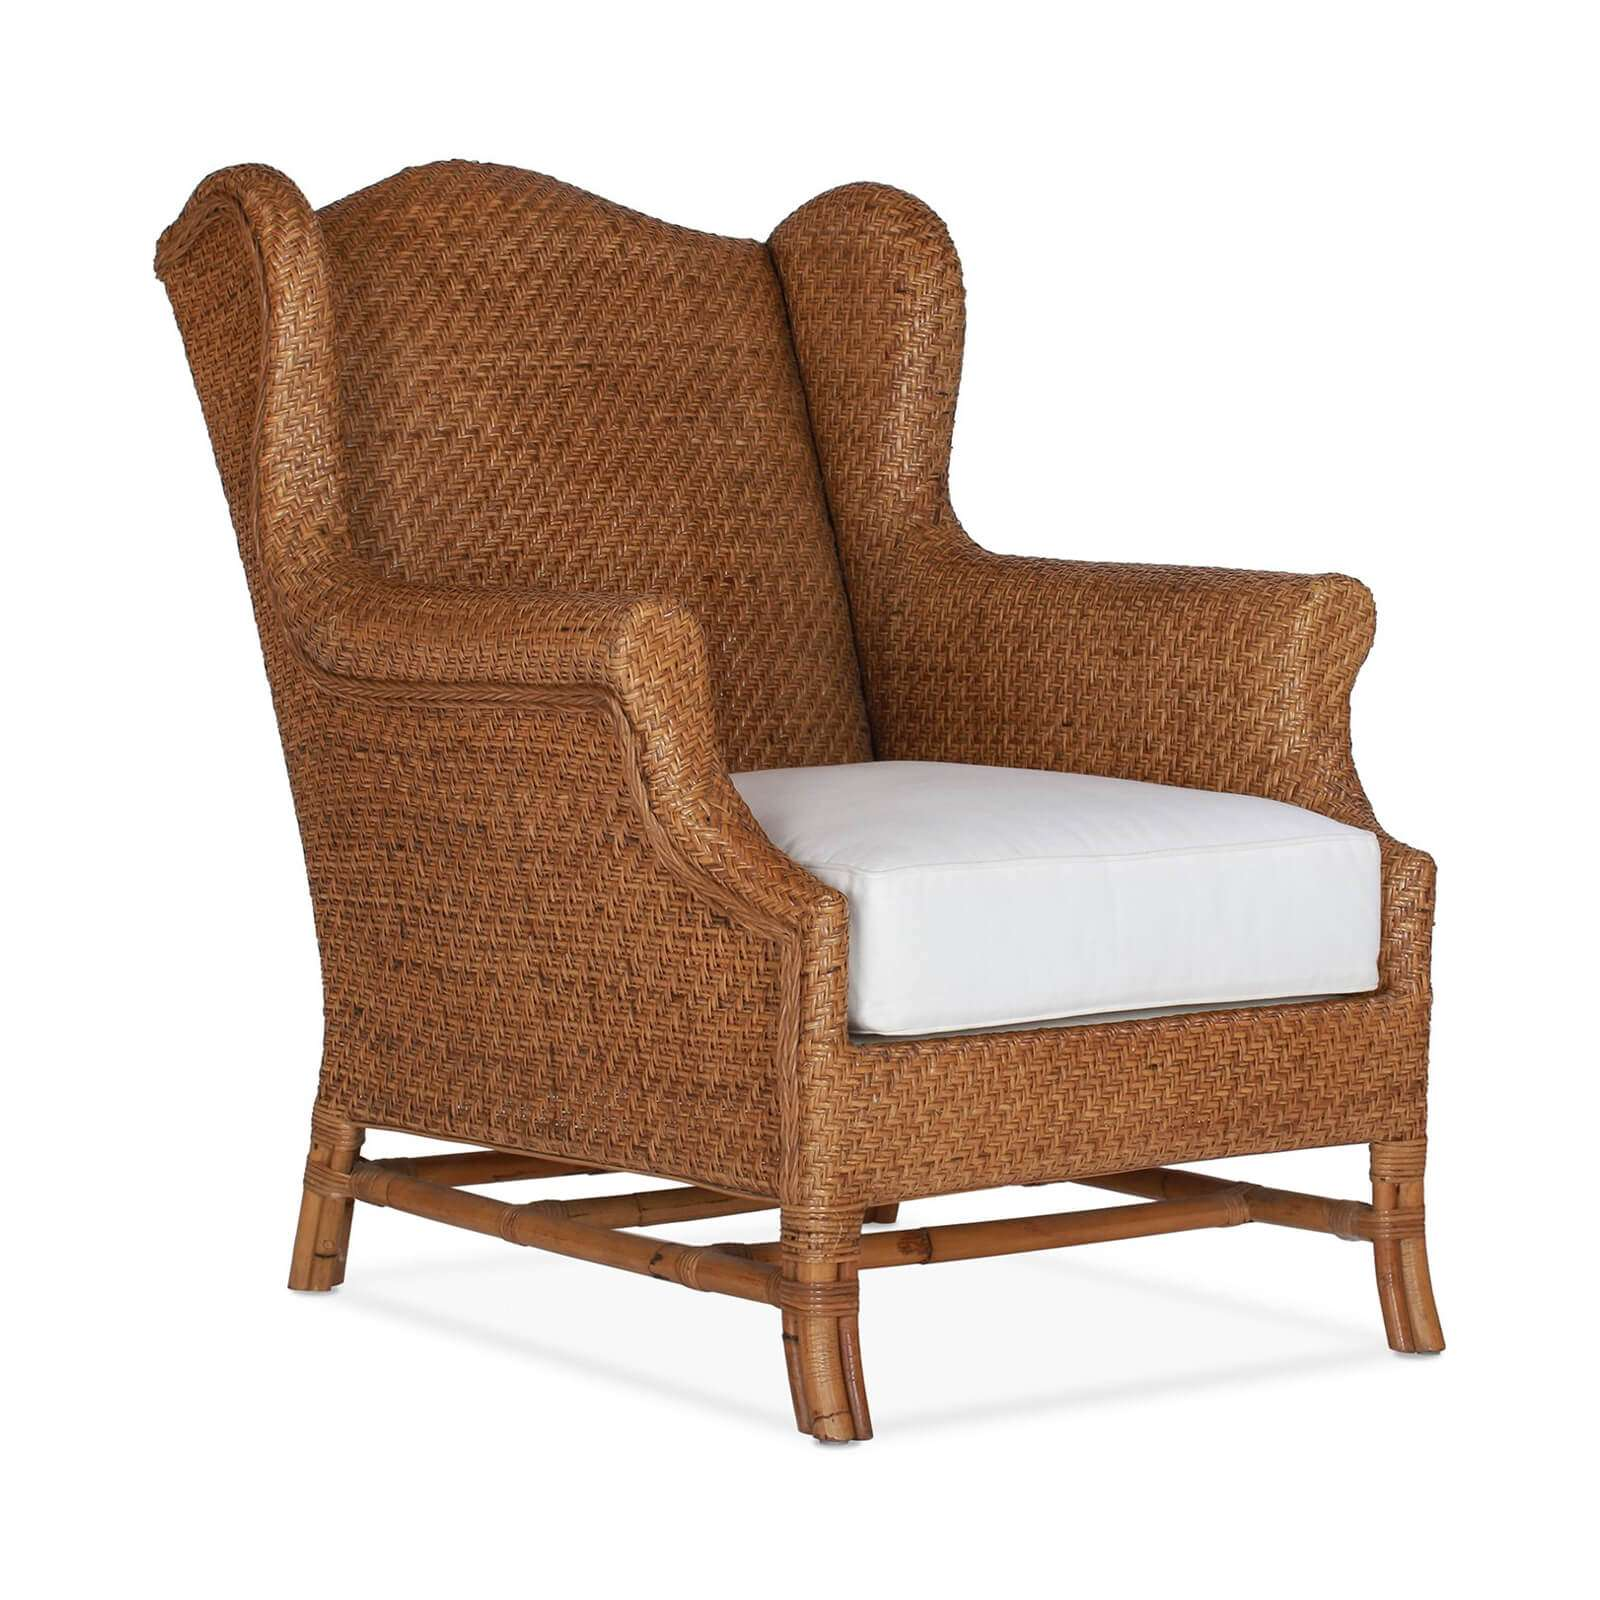 SAVANNA WING CHAIR 22 - STUART MEMBERY HOME COLLECTION